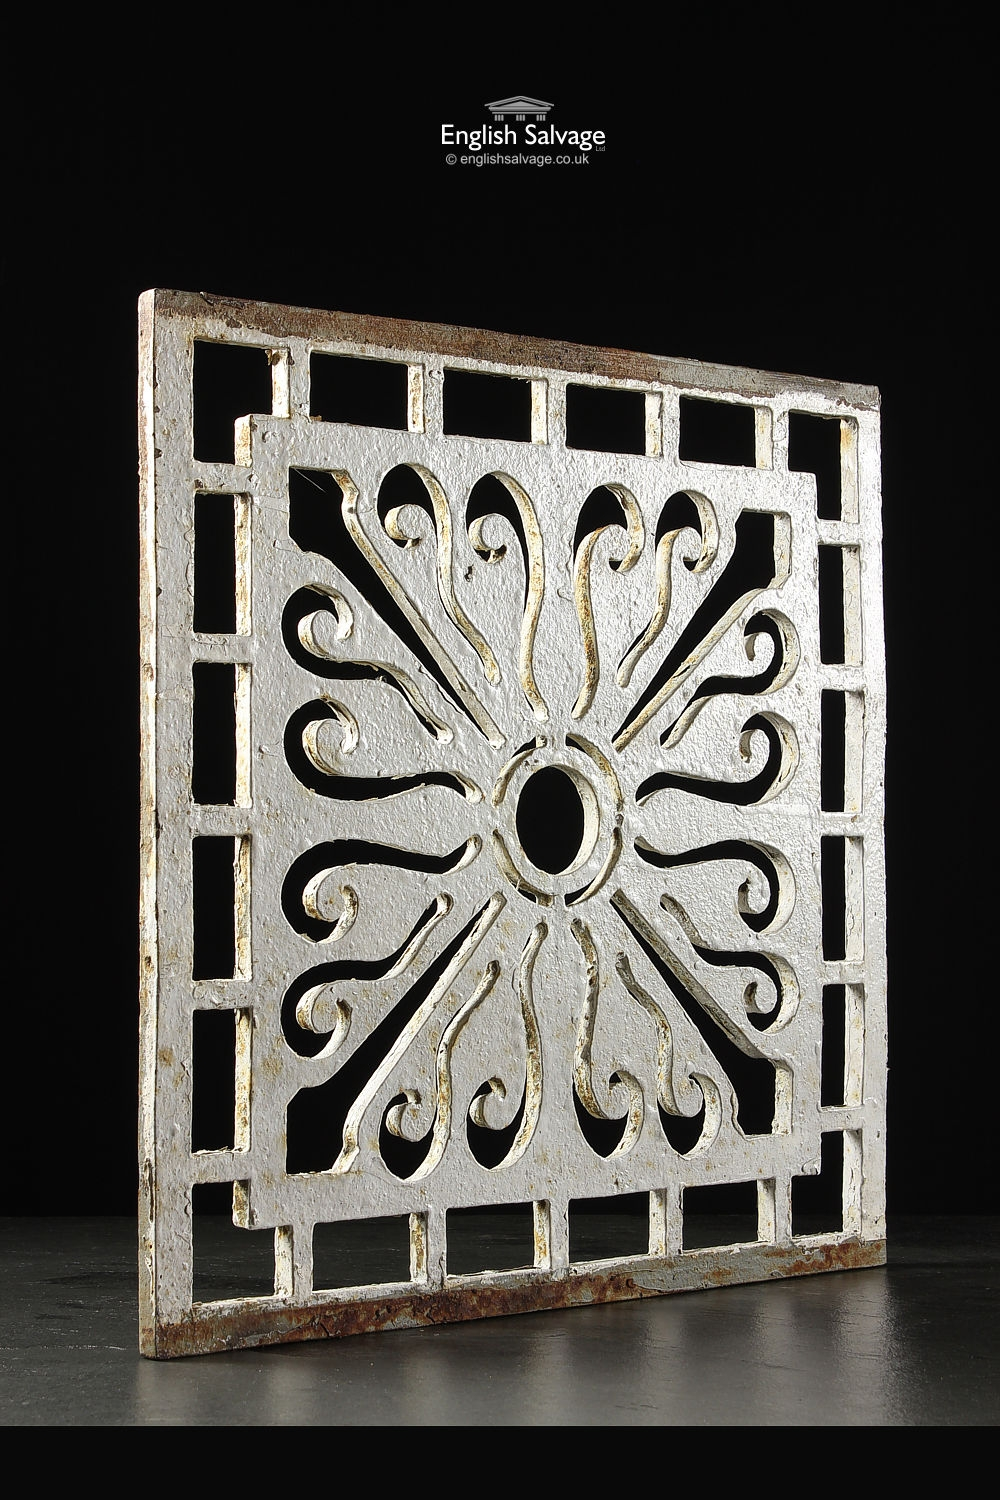 Old Painted Cast Iron Grille Grate Vent Panel